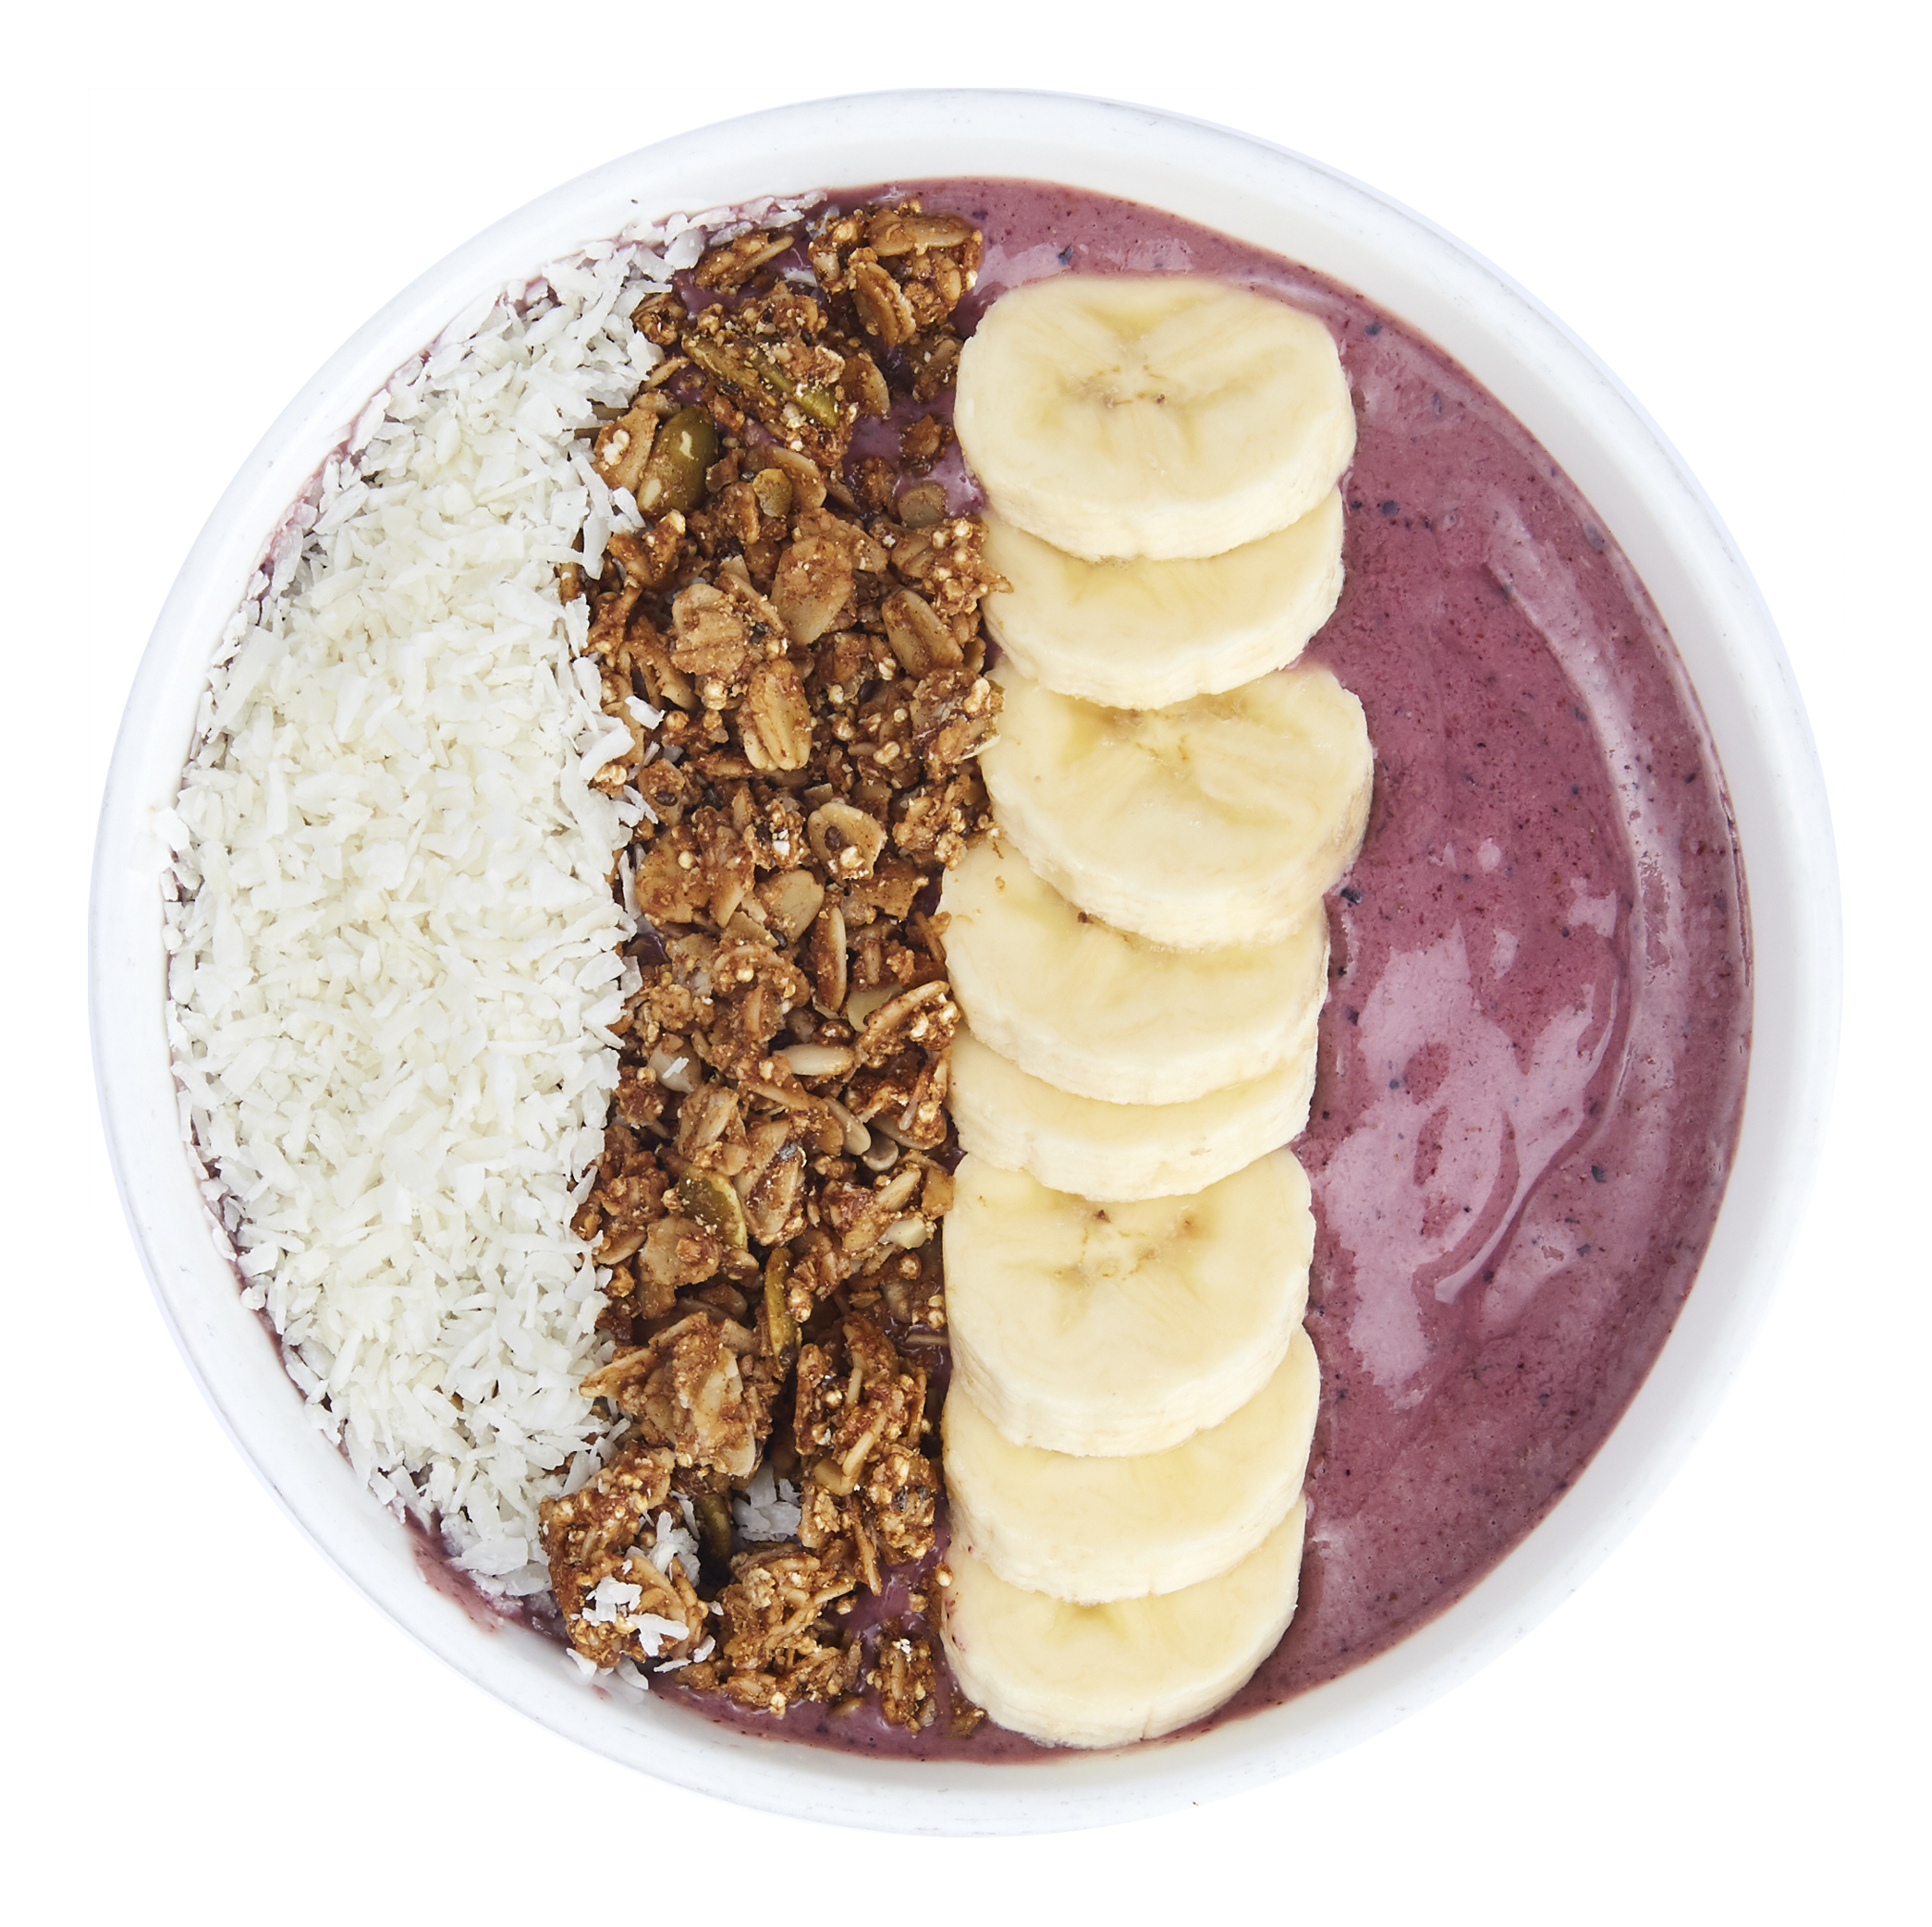 Açai Berry Bowl  - $10.99  Banana, acai, mixed berries, almond butter, almond milk  Toppings: banana, shredded coconut, granola.